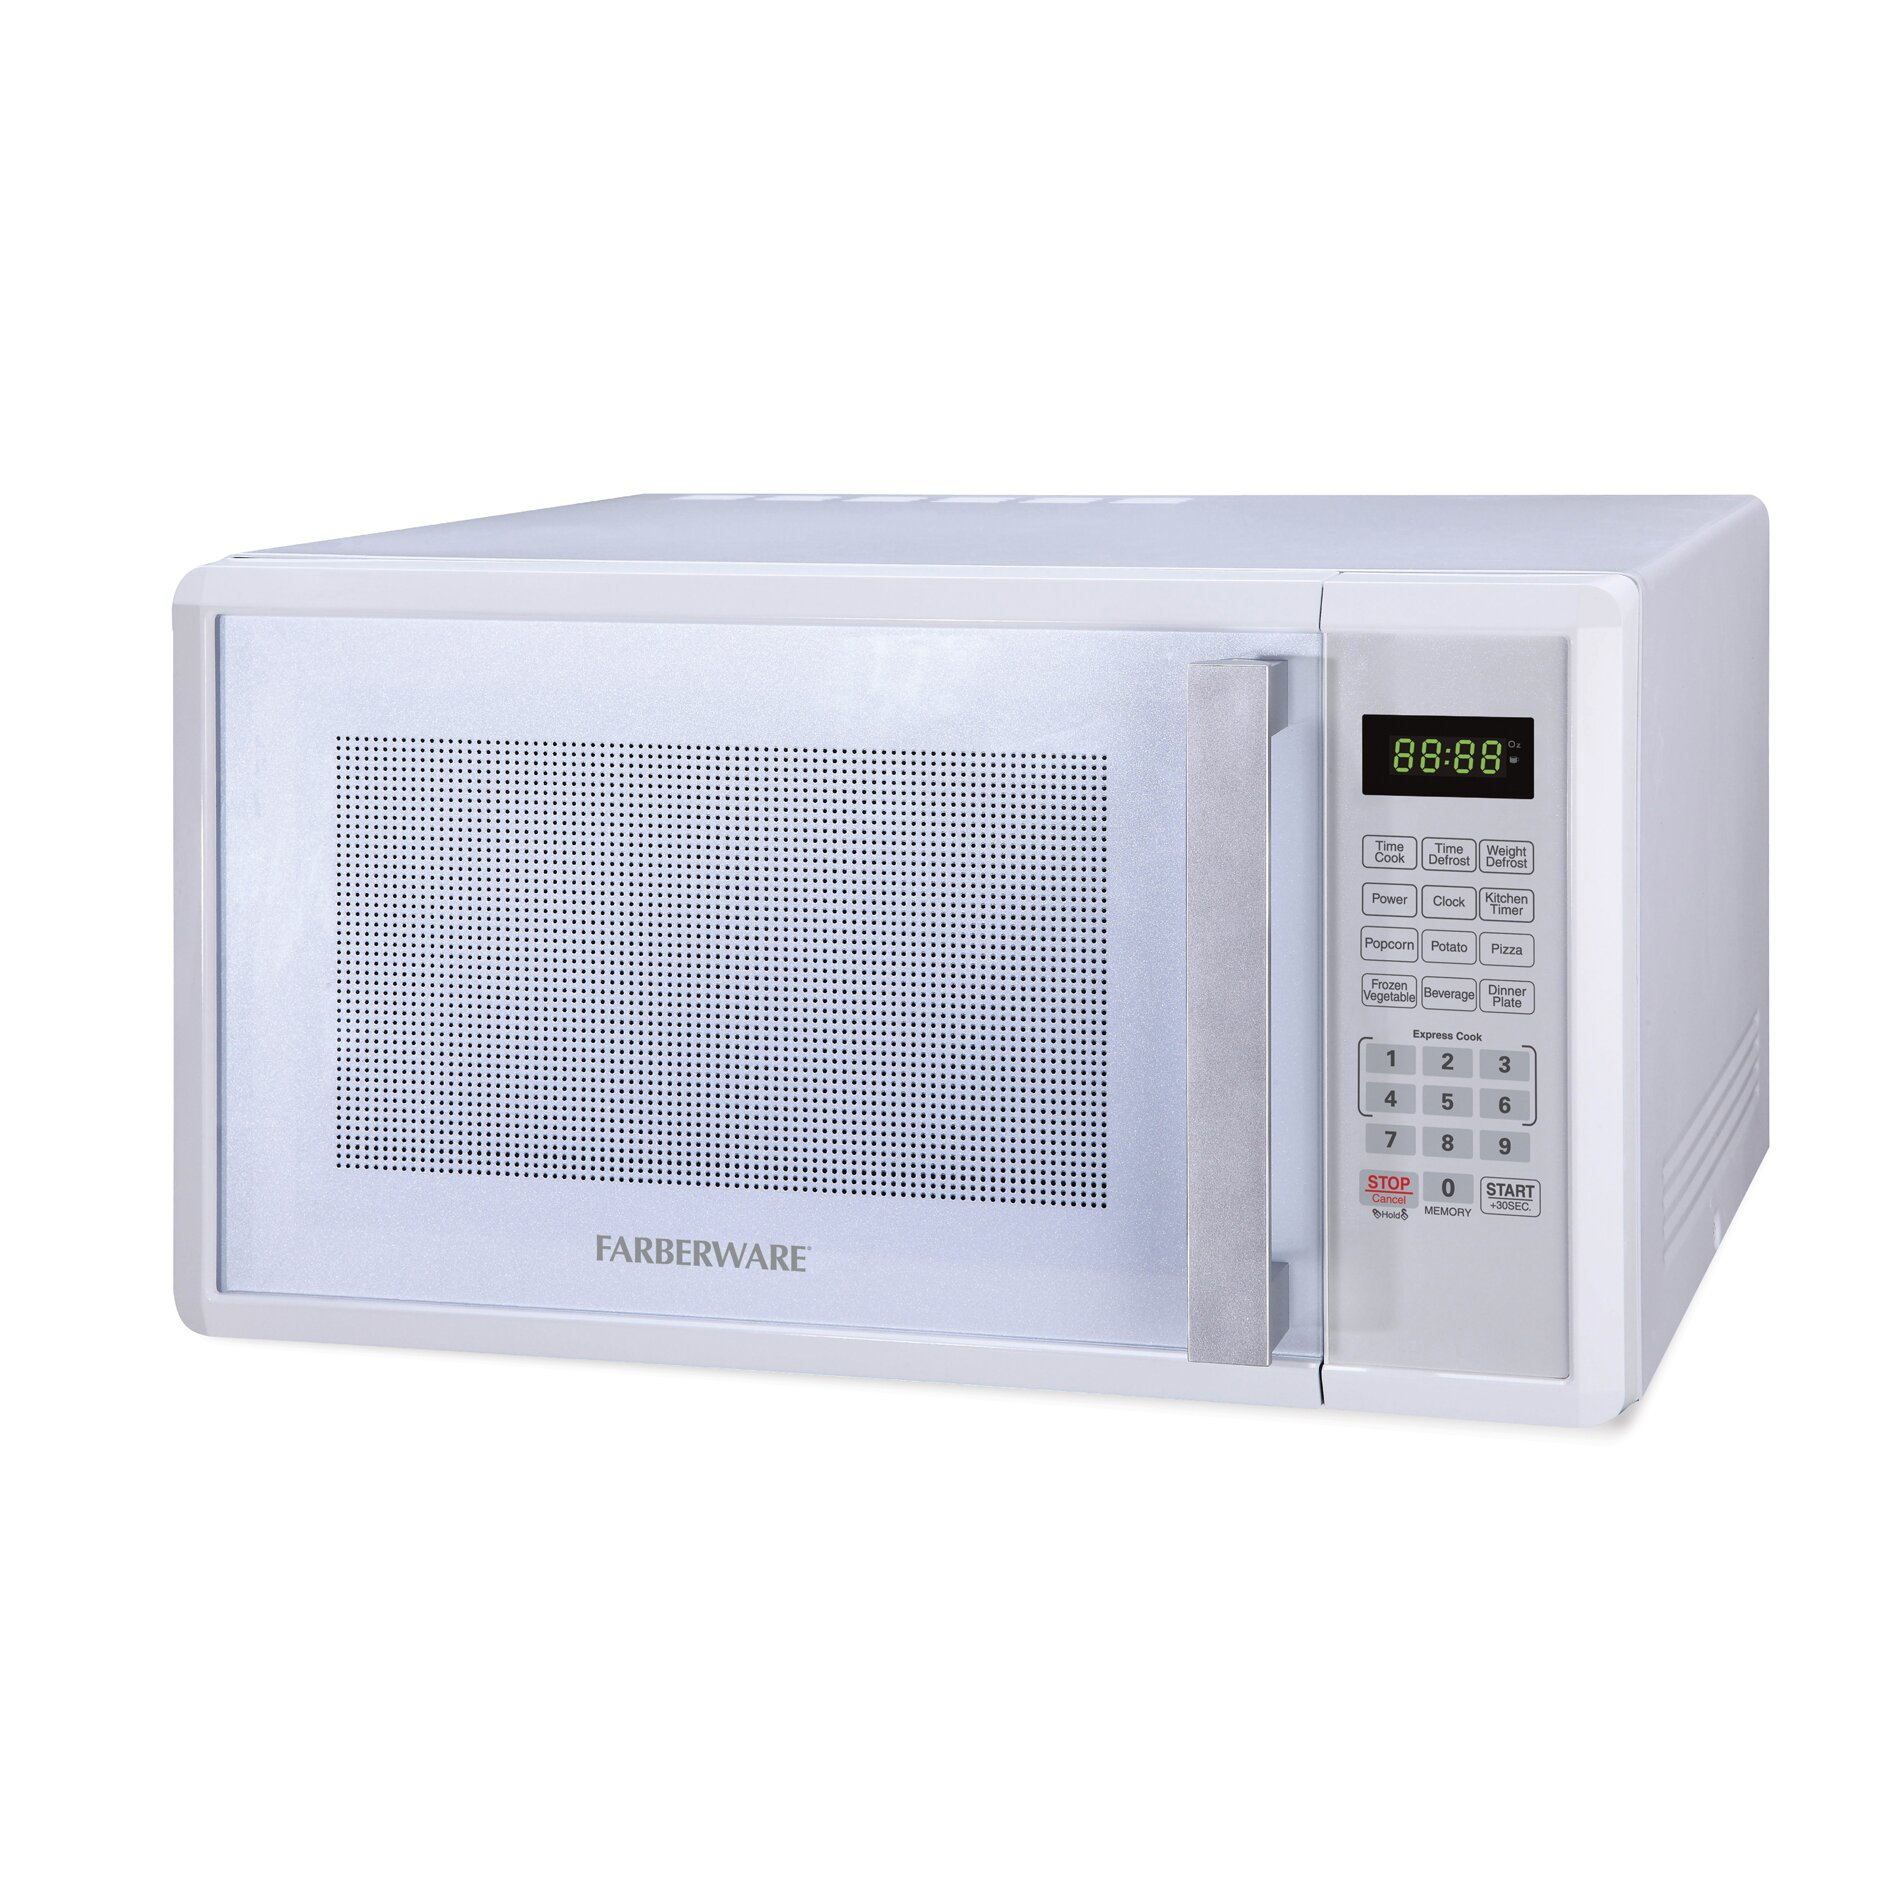 Countertop Microwave Oven Sale : Professional 1.1 Cu. Ft. 1000W Countertop Microwave Oven by Farberware